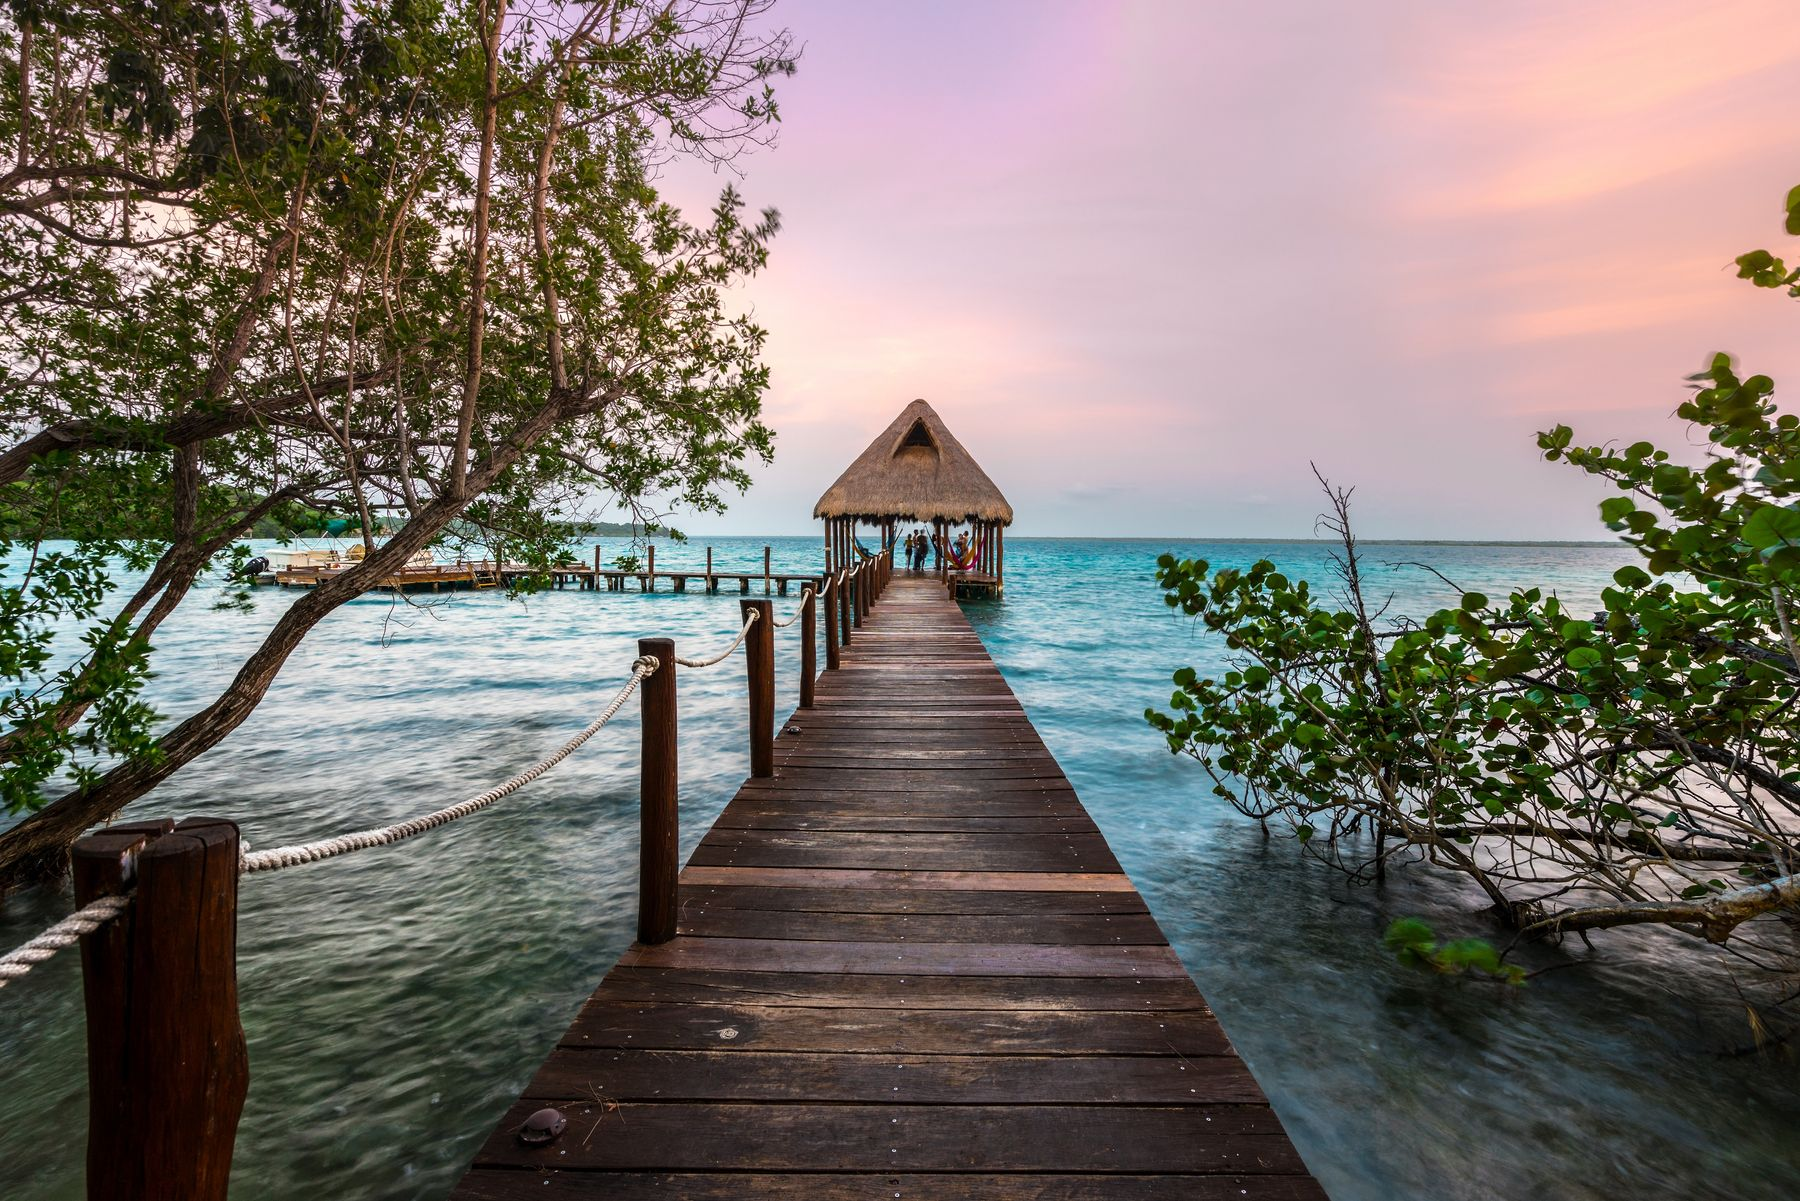 Sunset sky with dock leading to a cabana in Mexico